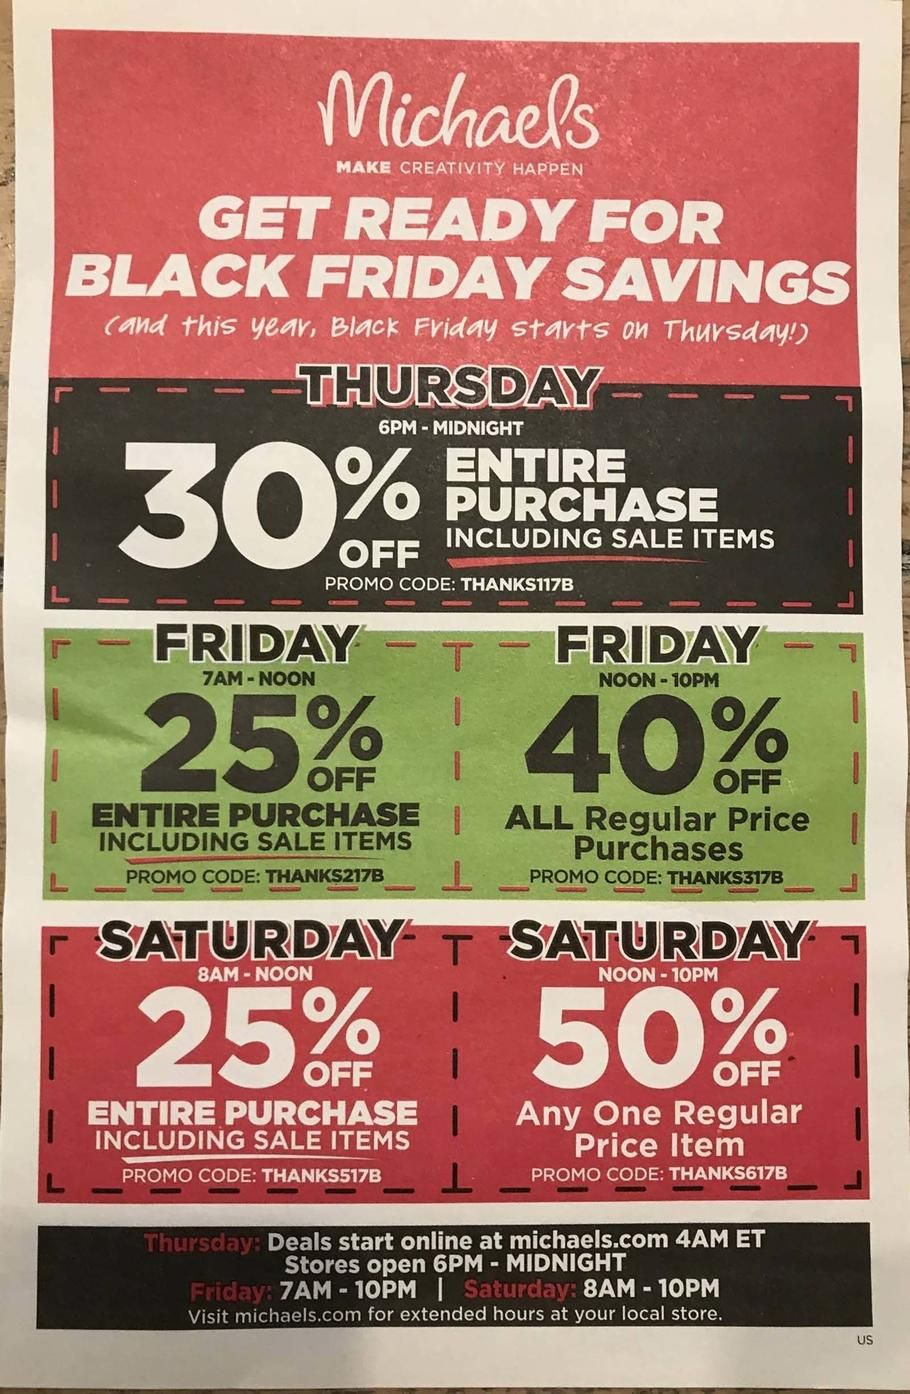 f97c85ddfe2fd Michaels Black Friday 2017 Ad Scan Deals and Sales #coupons The 2017  Michaels Black Friday ad is here! Starting at 6PM on Thanksgiving until  midnight theyll ...